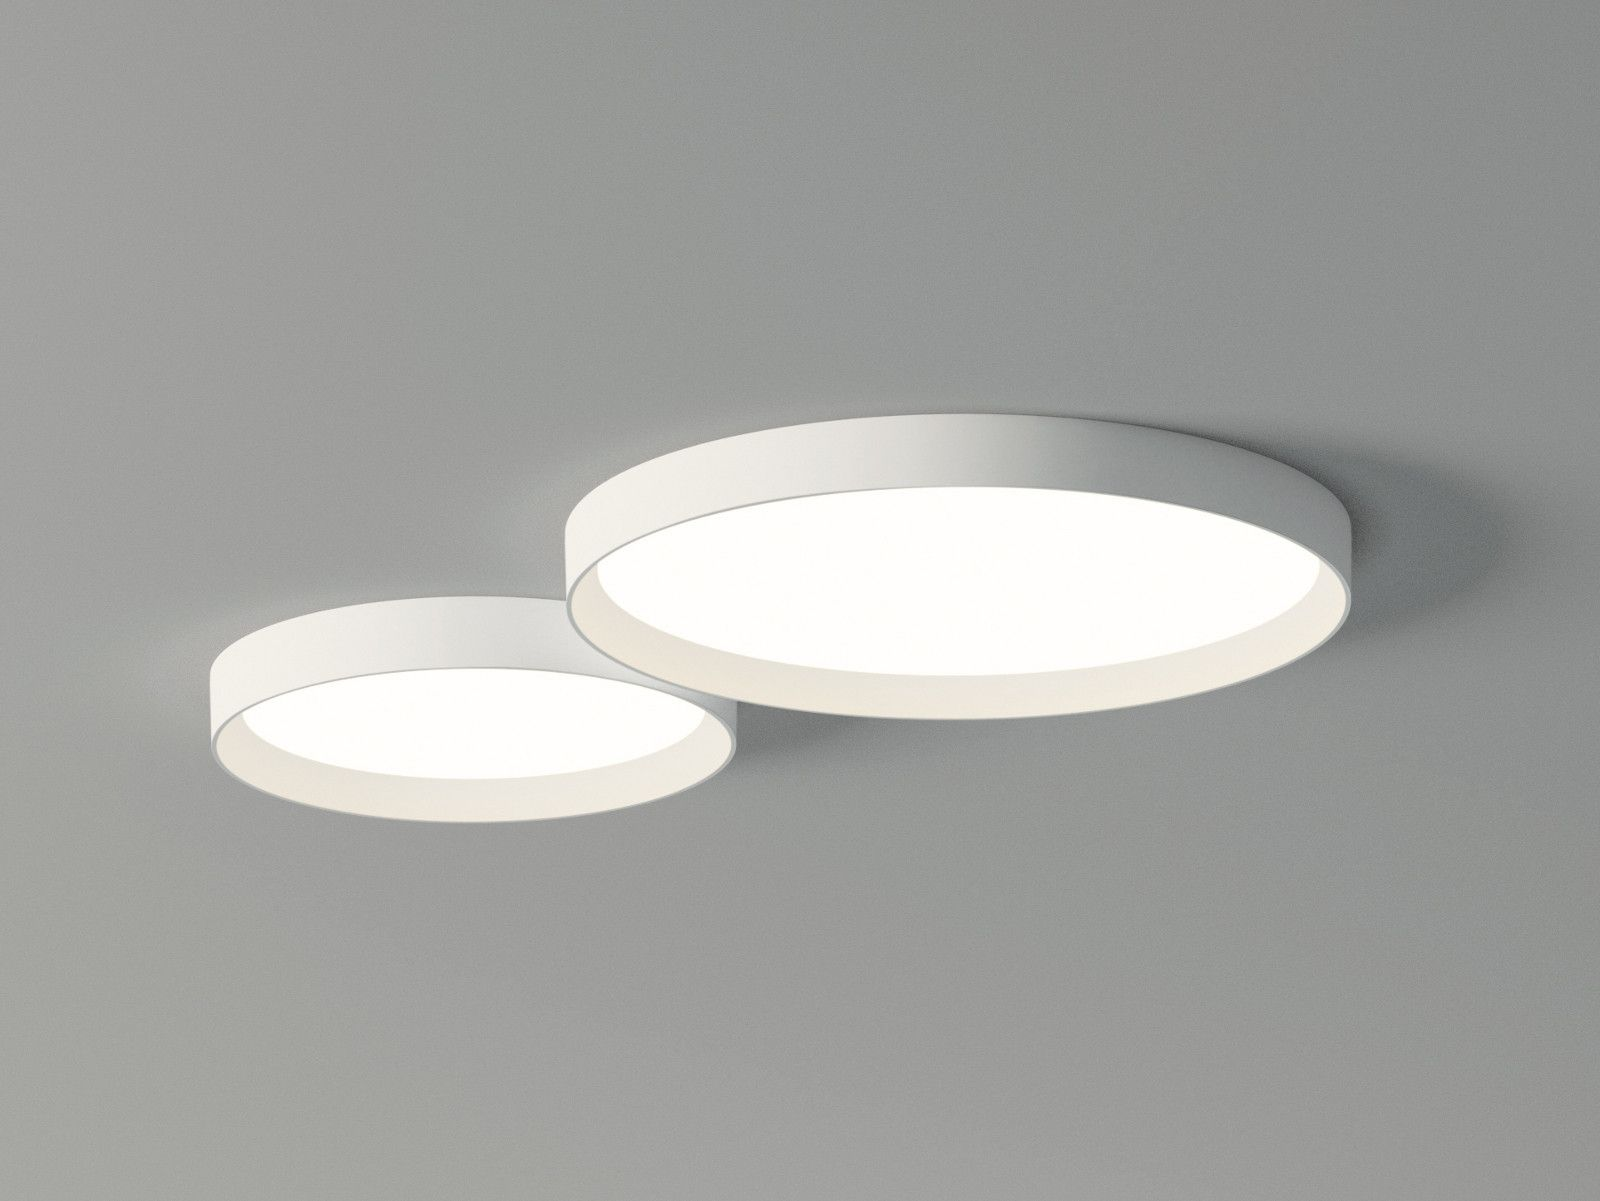 Deckenlampe Küche Led Led Deckenlampe Up 4442 By Vibia Lampen Led Lampe